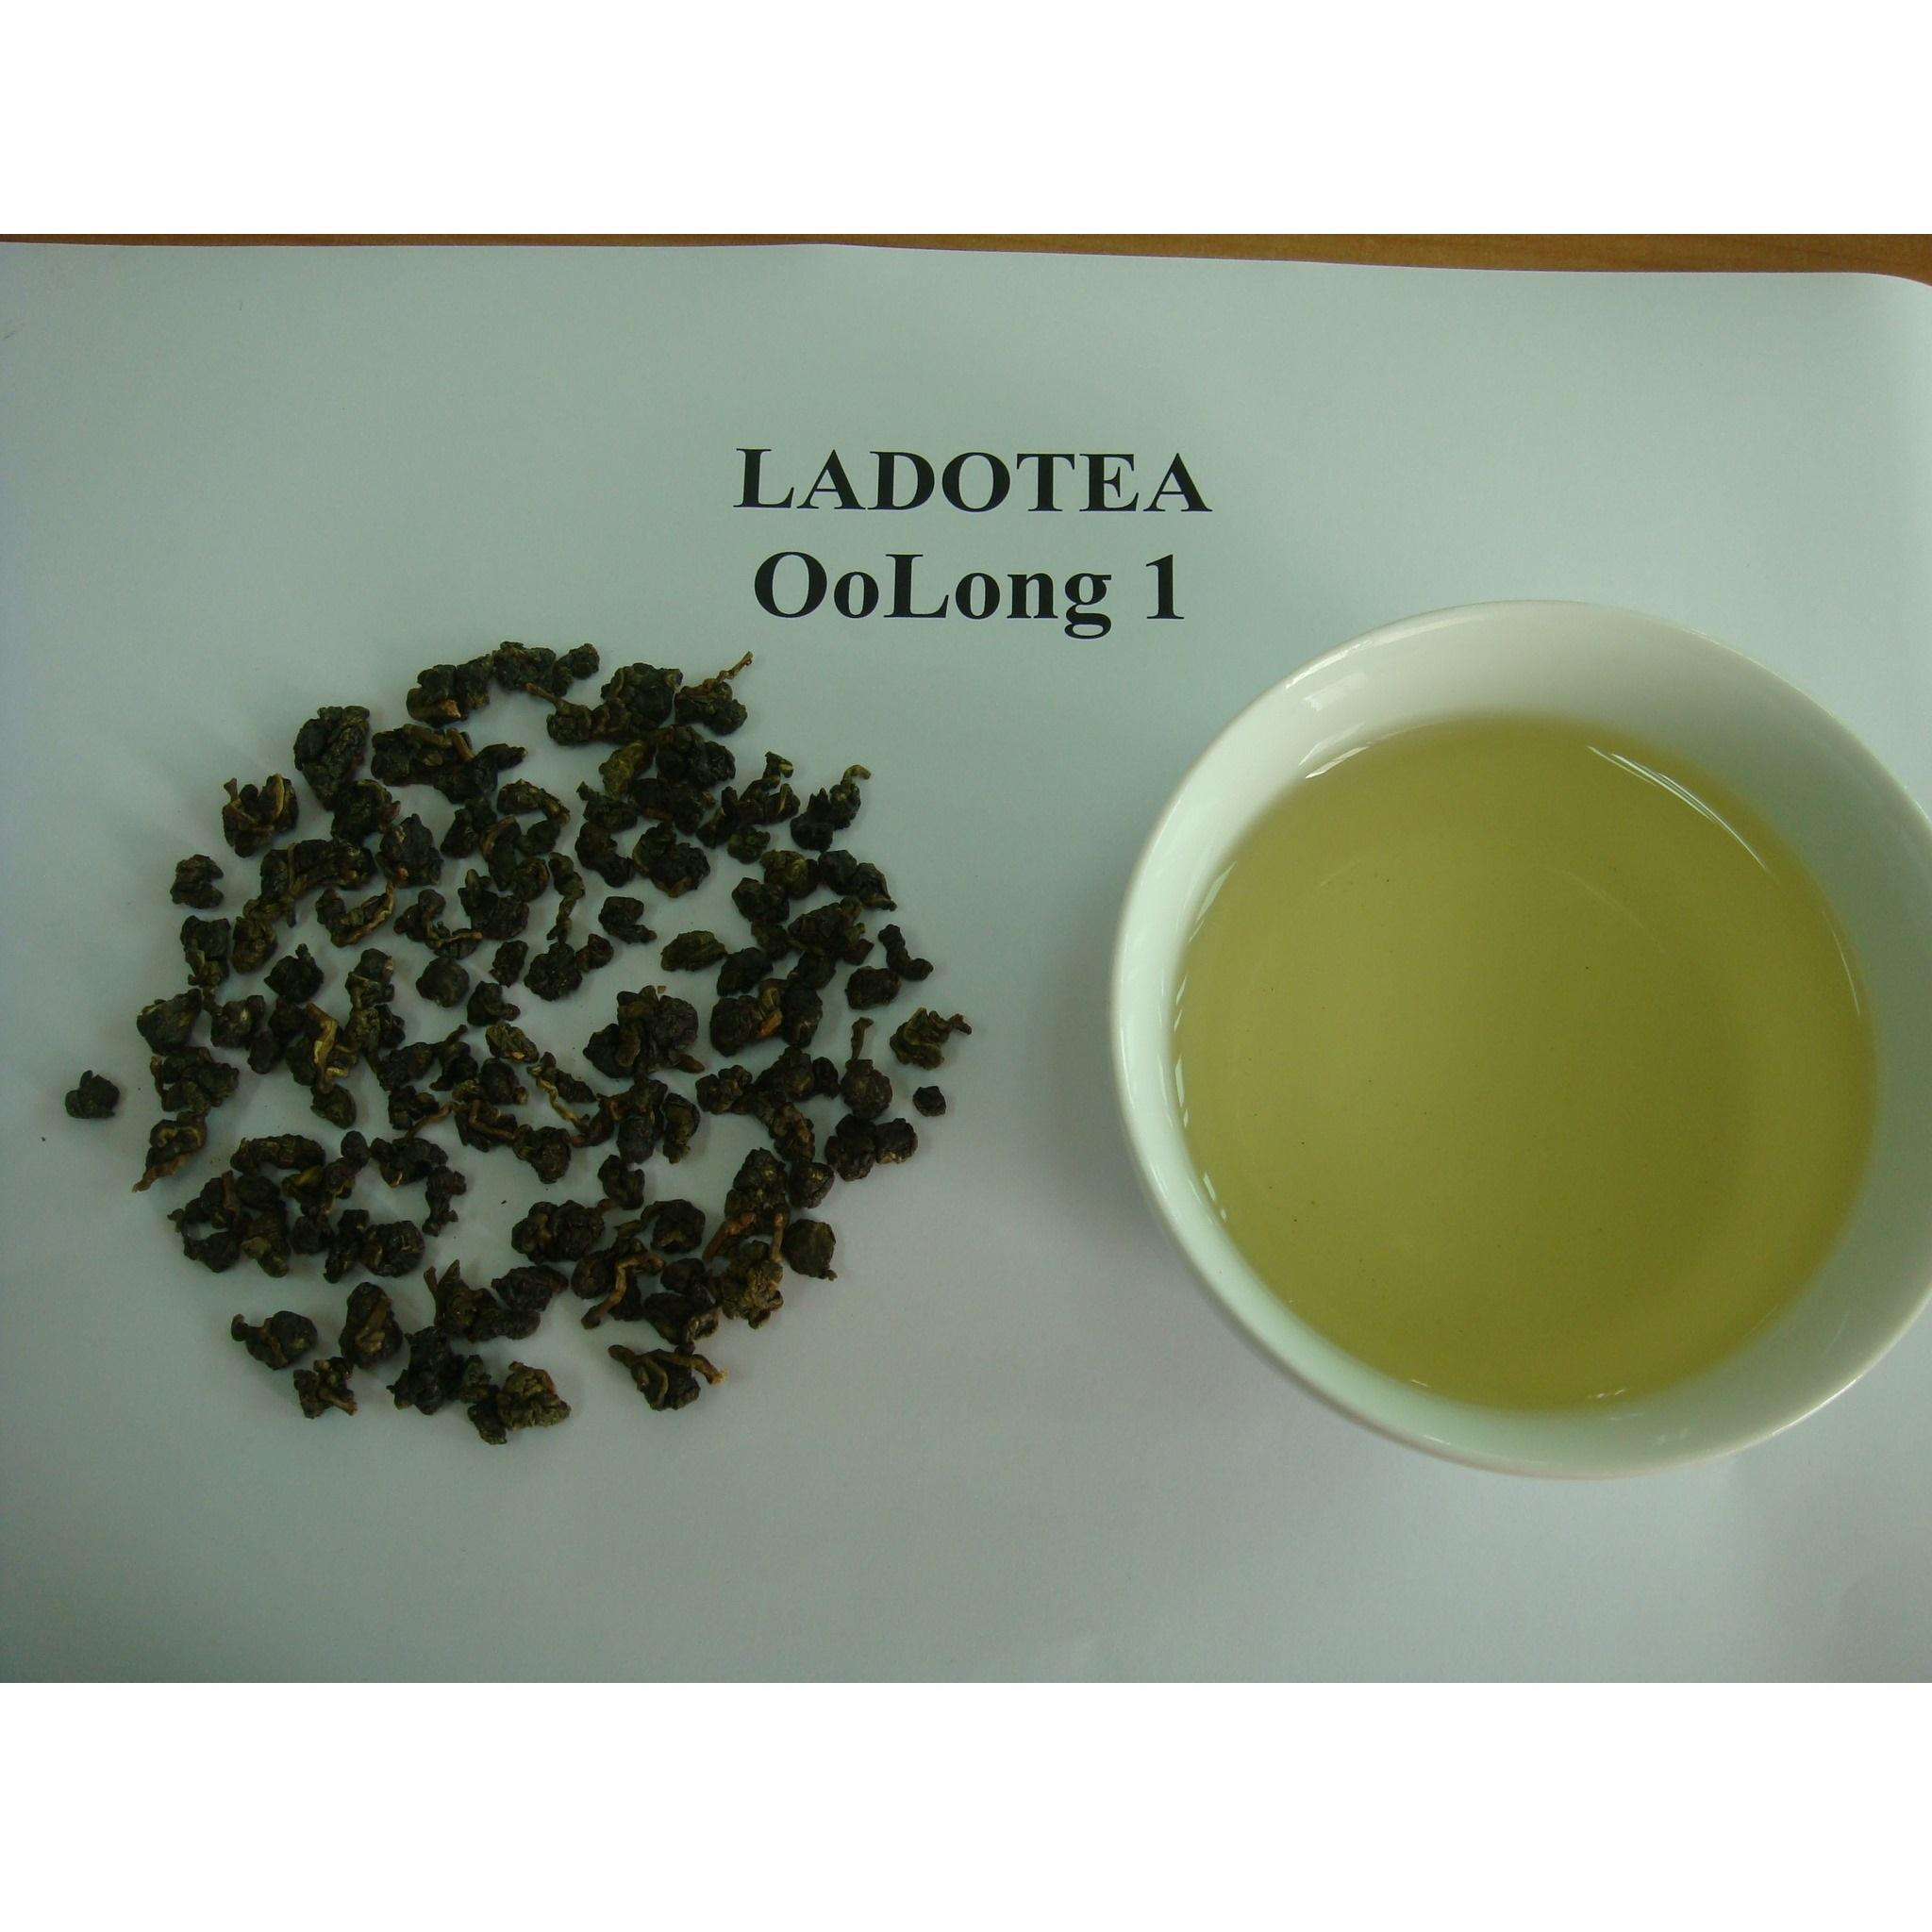 Wholesale Special Grade Fermented Processing Type Ladotea Brand Oolong 1 Tea From Vietnam